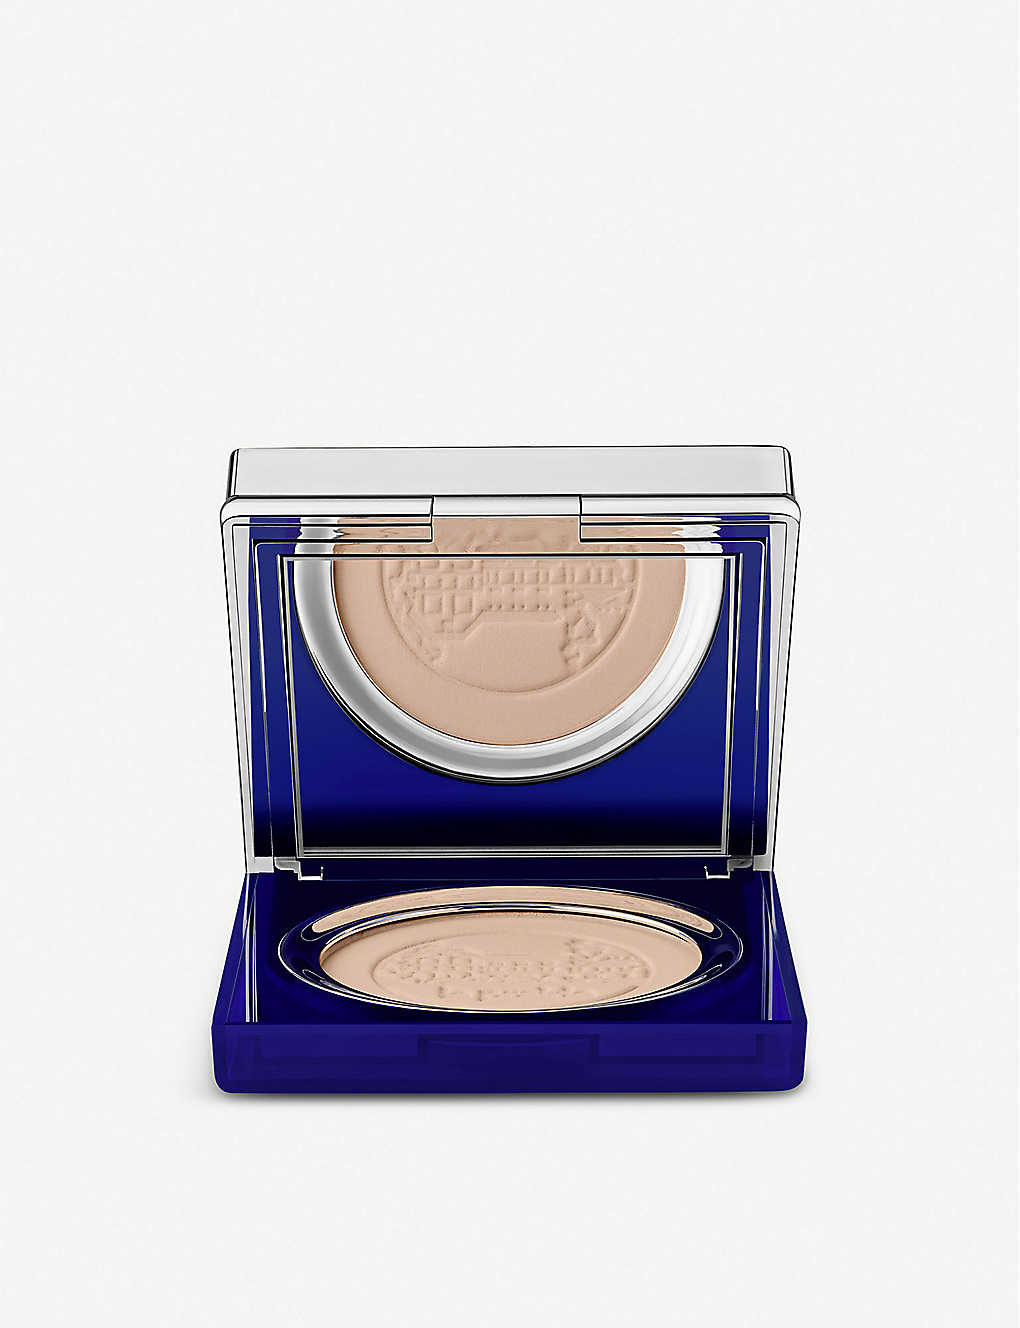 LA PRAIRIE: Caviar-Infused Compact Foundation 9g